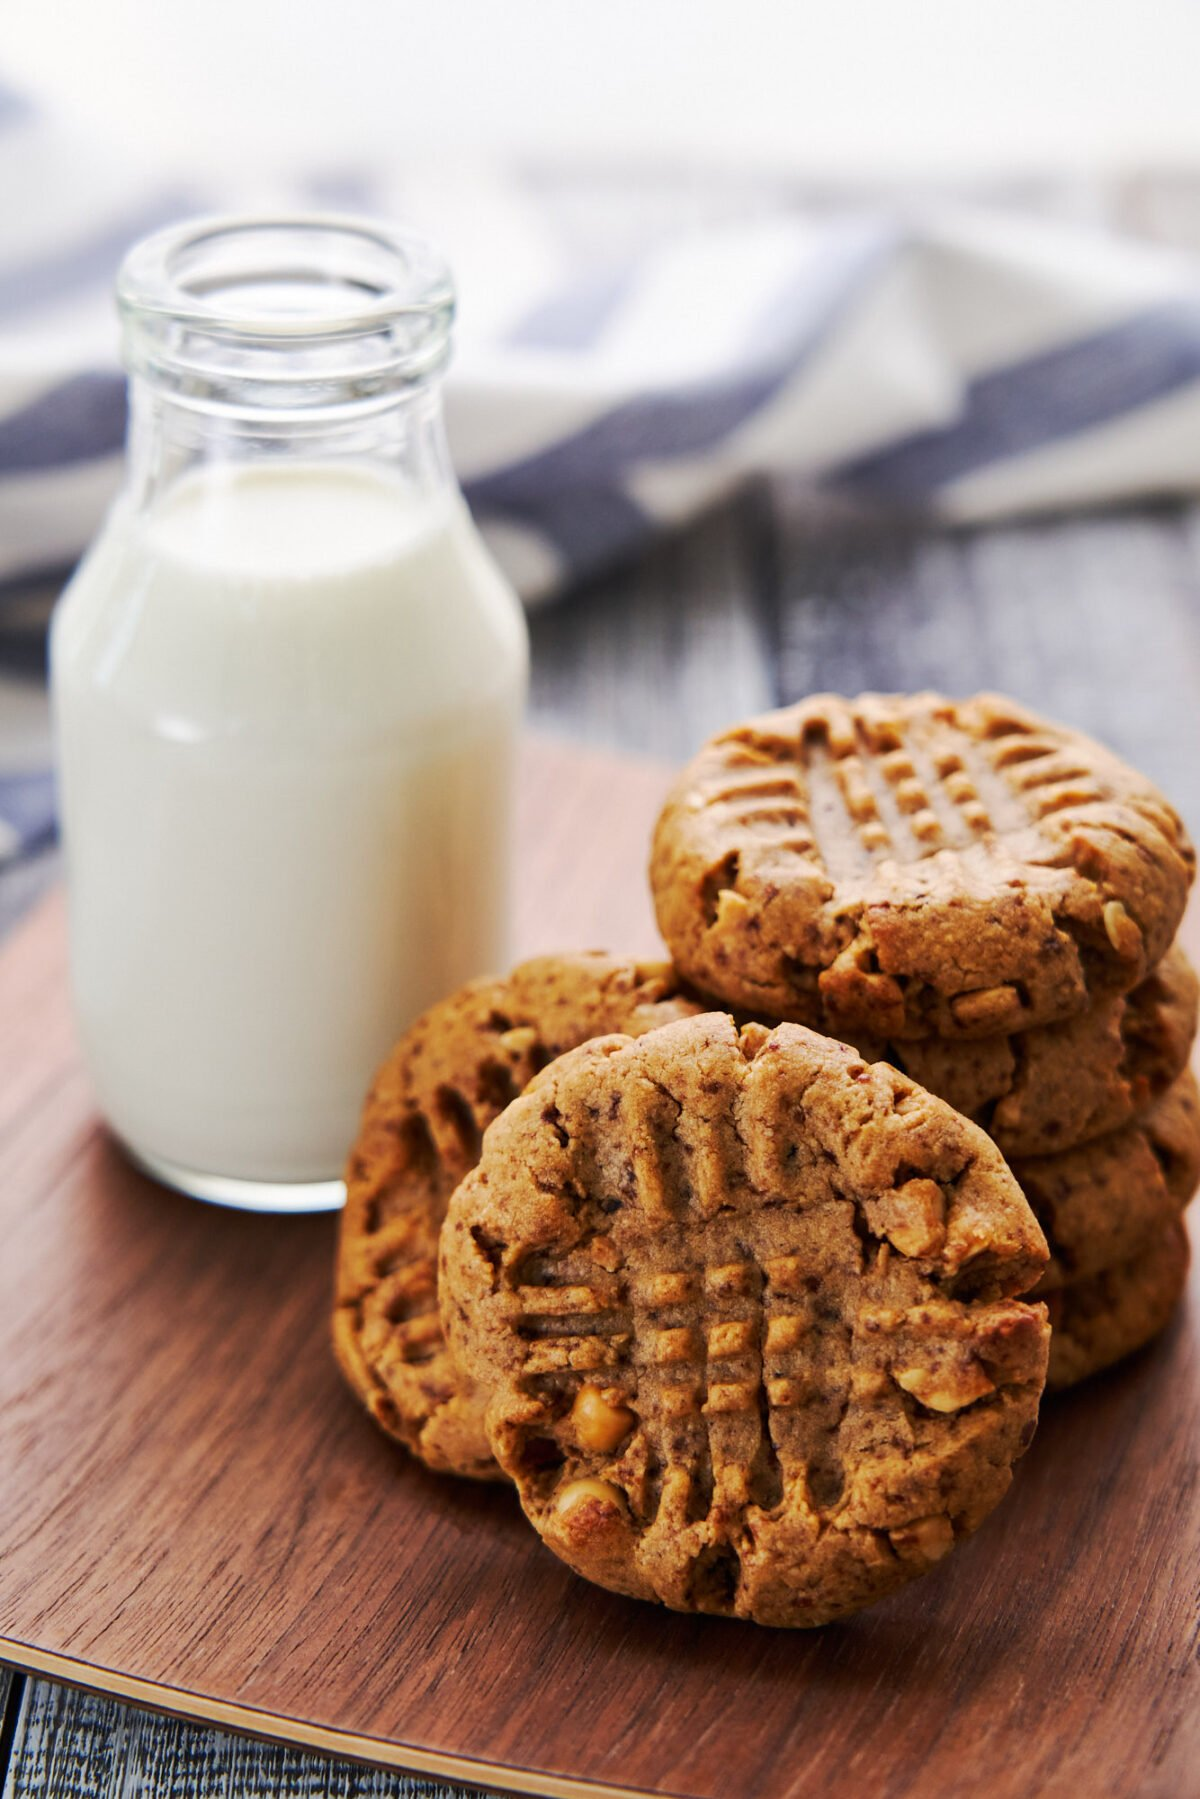 These easy delicious Peanut Butter Cookies come together in minutes from just a handful of ingredients and yet they're pack with protein and mouthwateringly good.